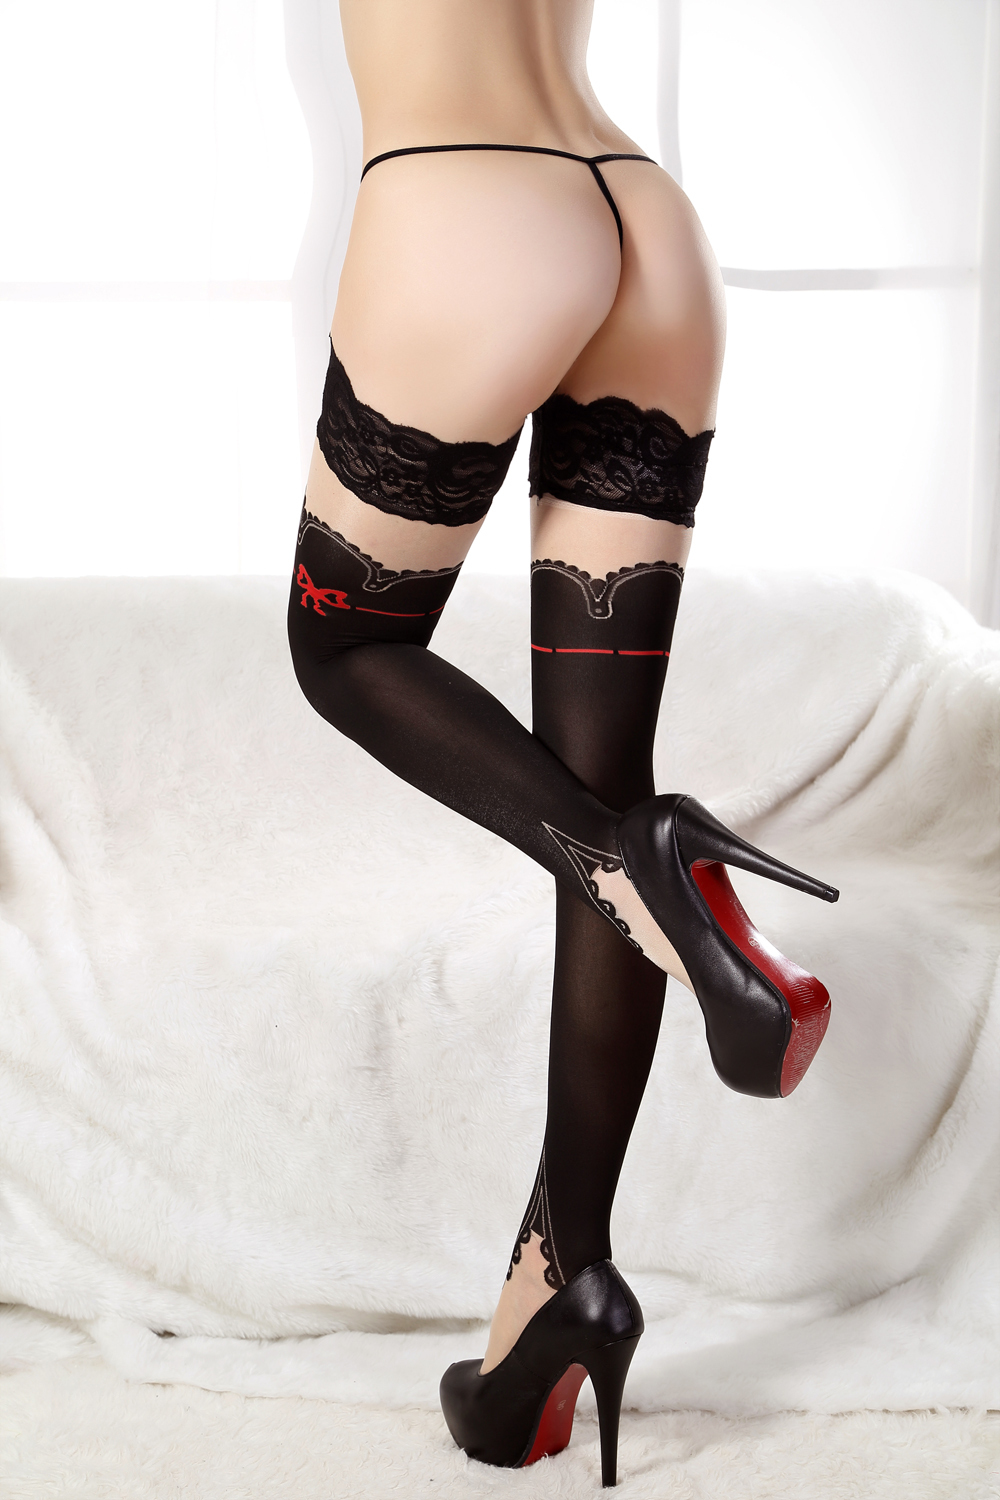 Ass and sexy highs thigh